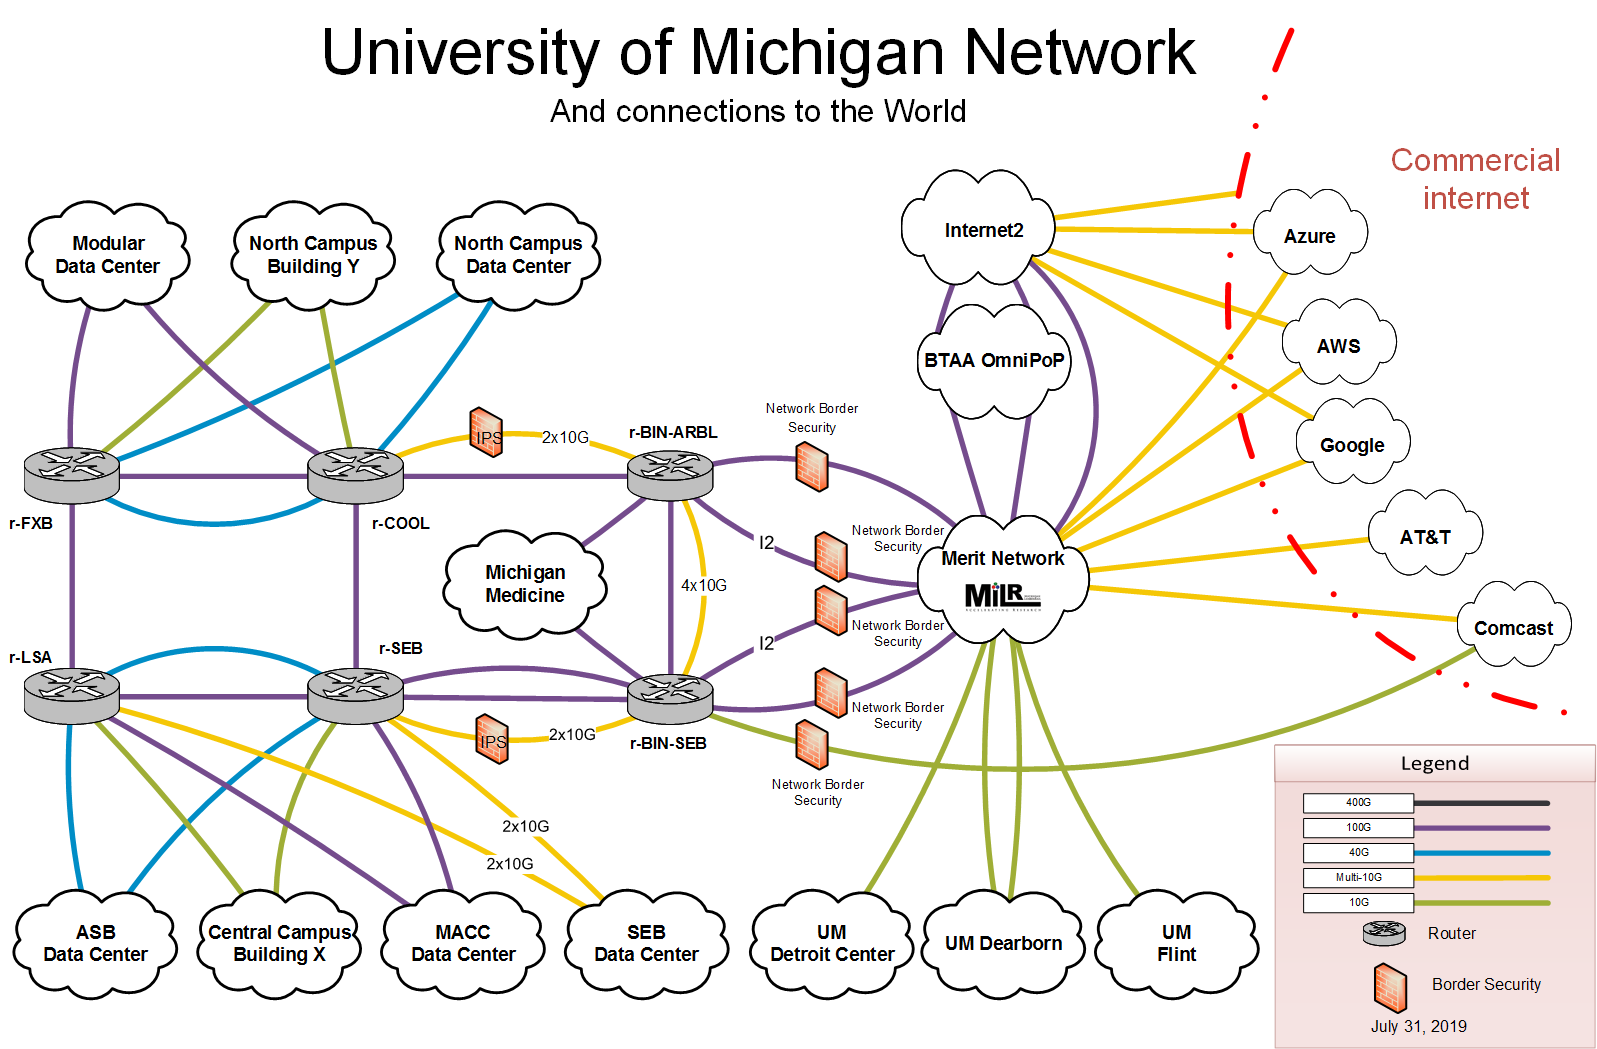 U-M Campus Network Diagram